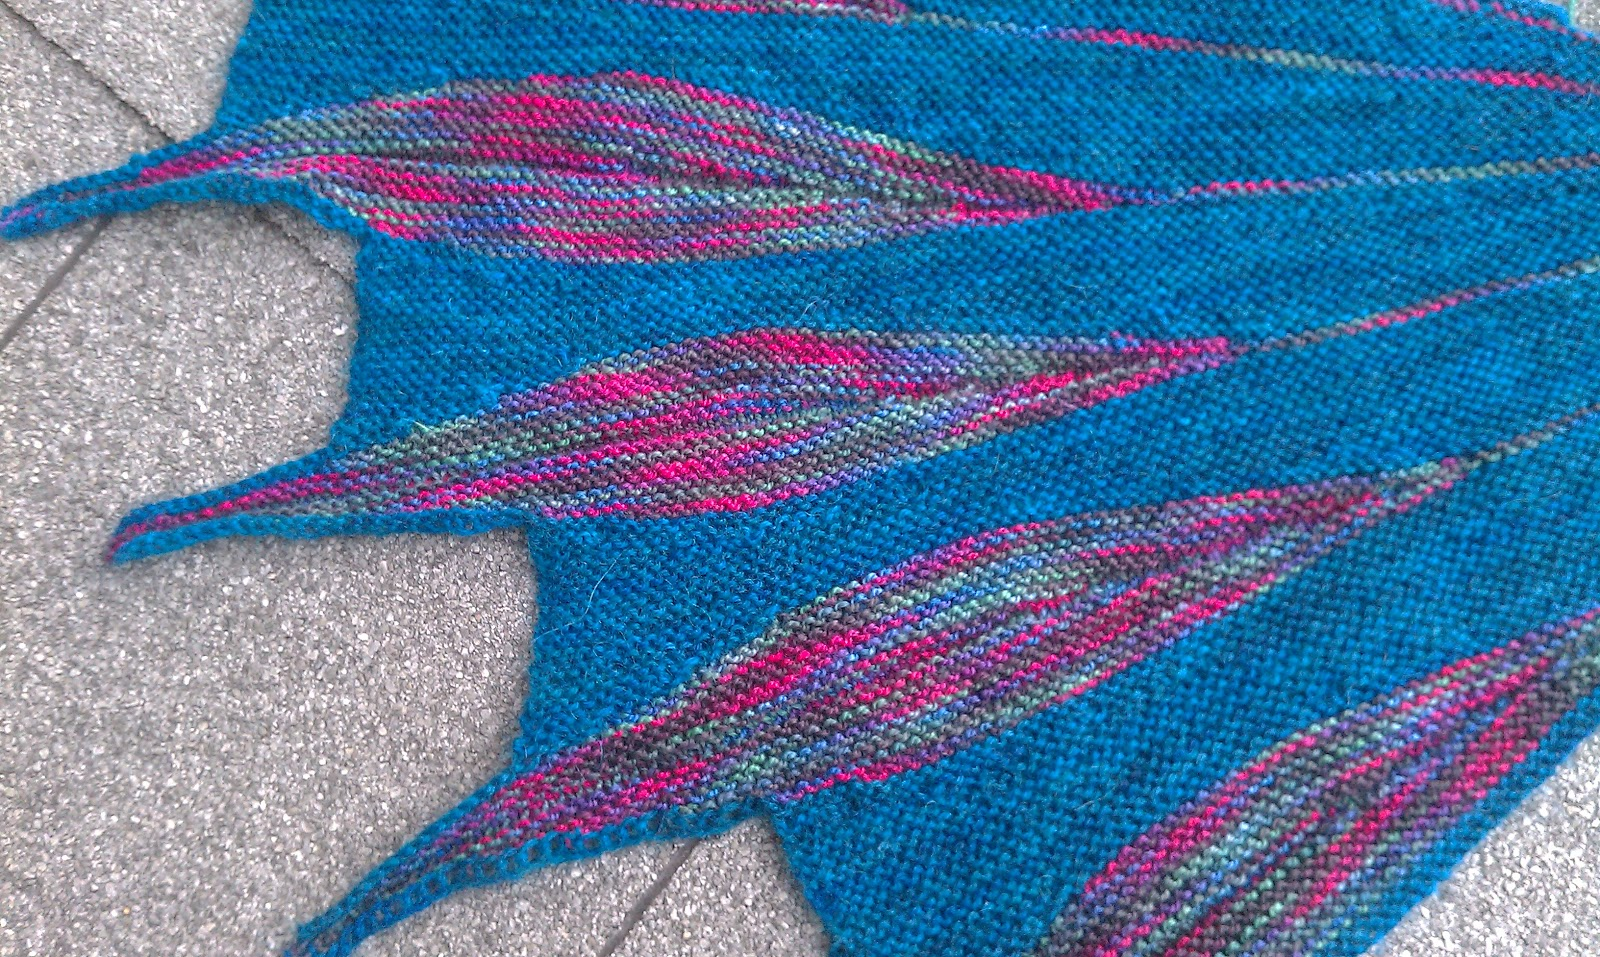 Dreambird Knitting Pattern : OceanKnitter: Dreambird and a Swing Knitting Class